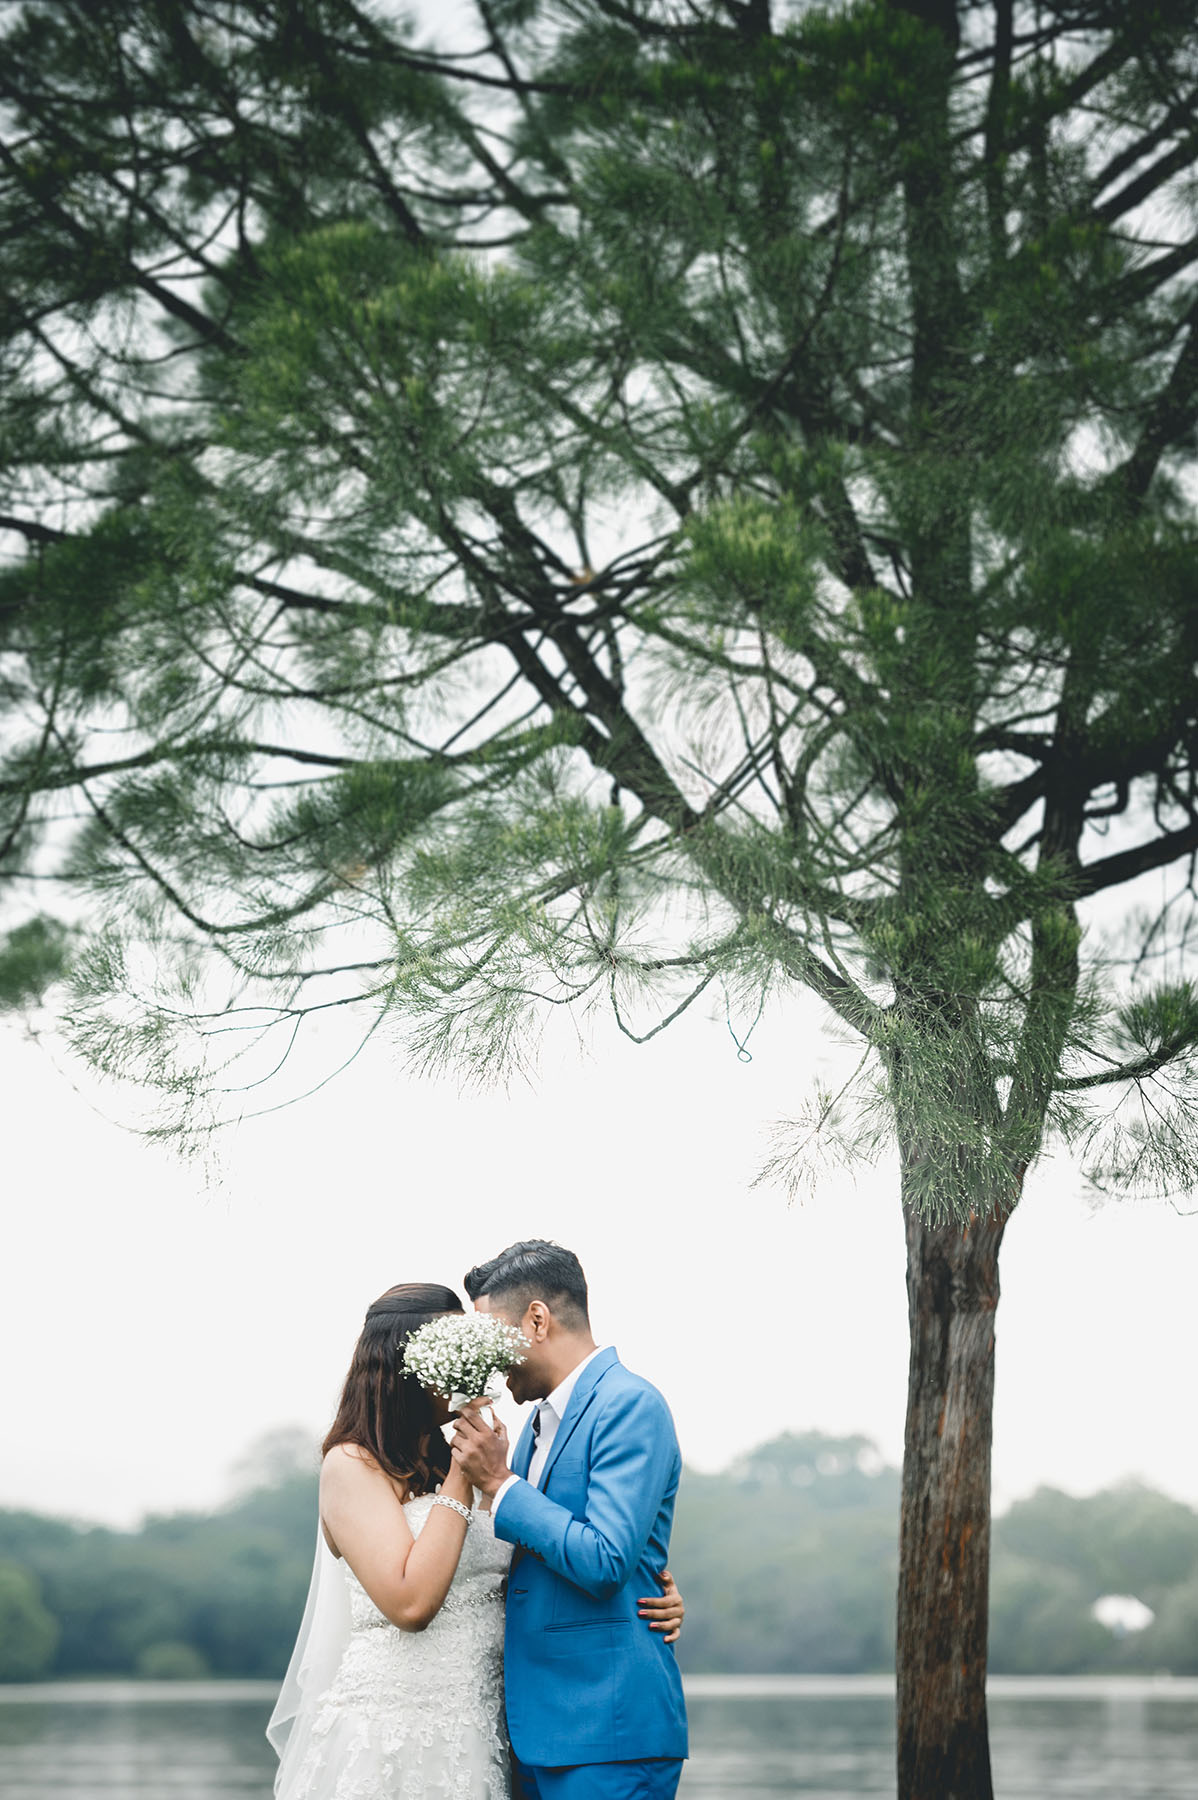 1 Prewedding upper seletar 00006d.JPG